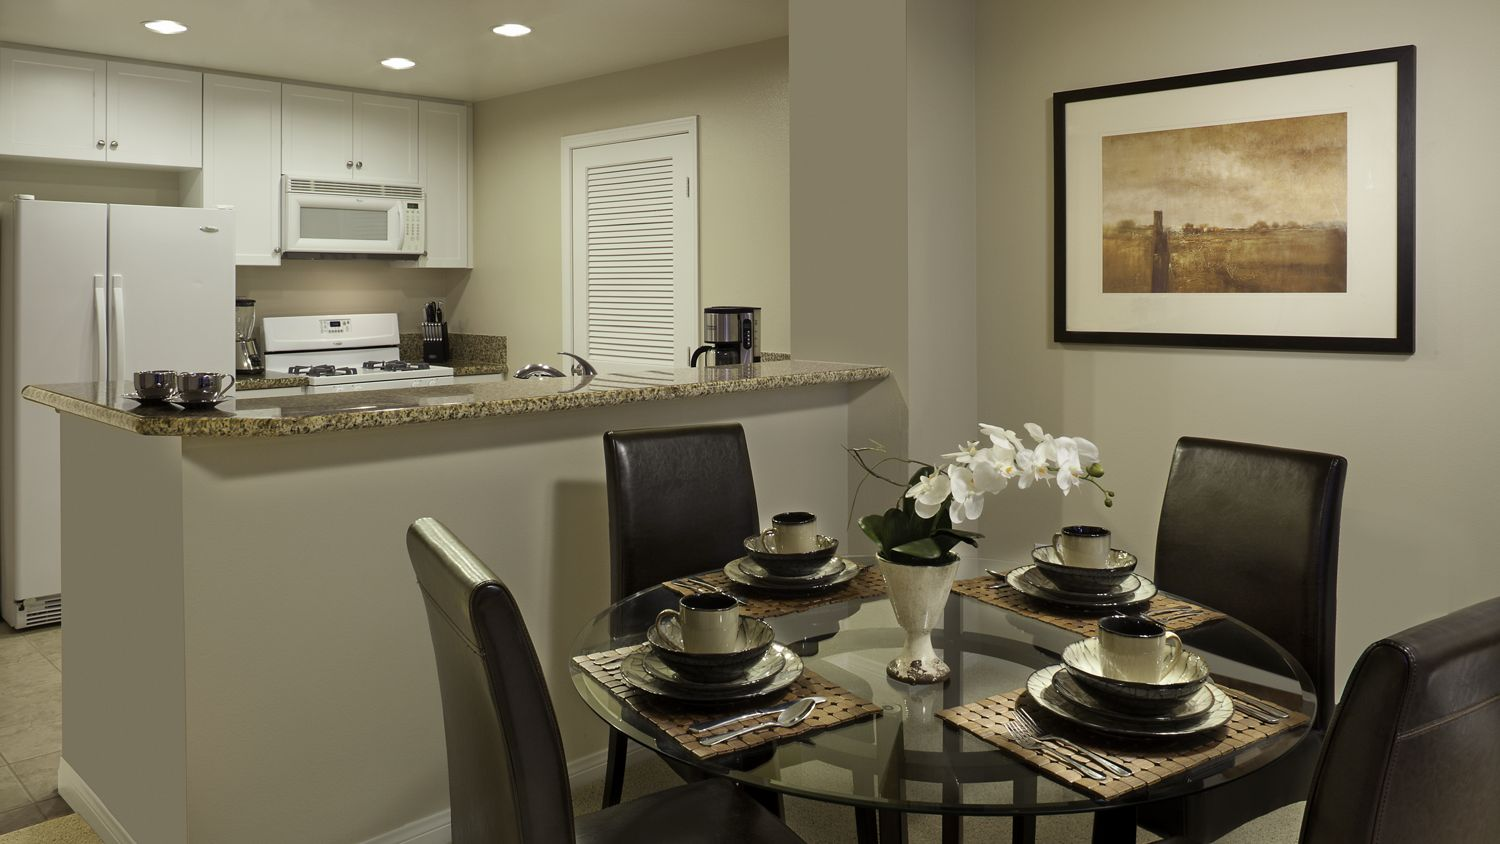 Interior shots of the Mirador rooms at The Village at the Irvine Spectrum. Lamb 2012.